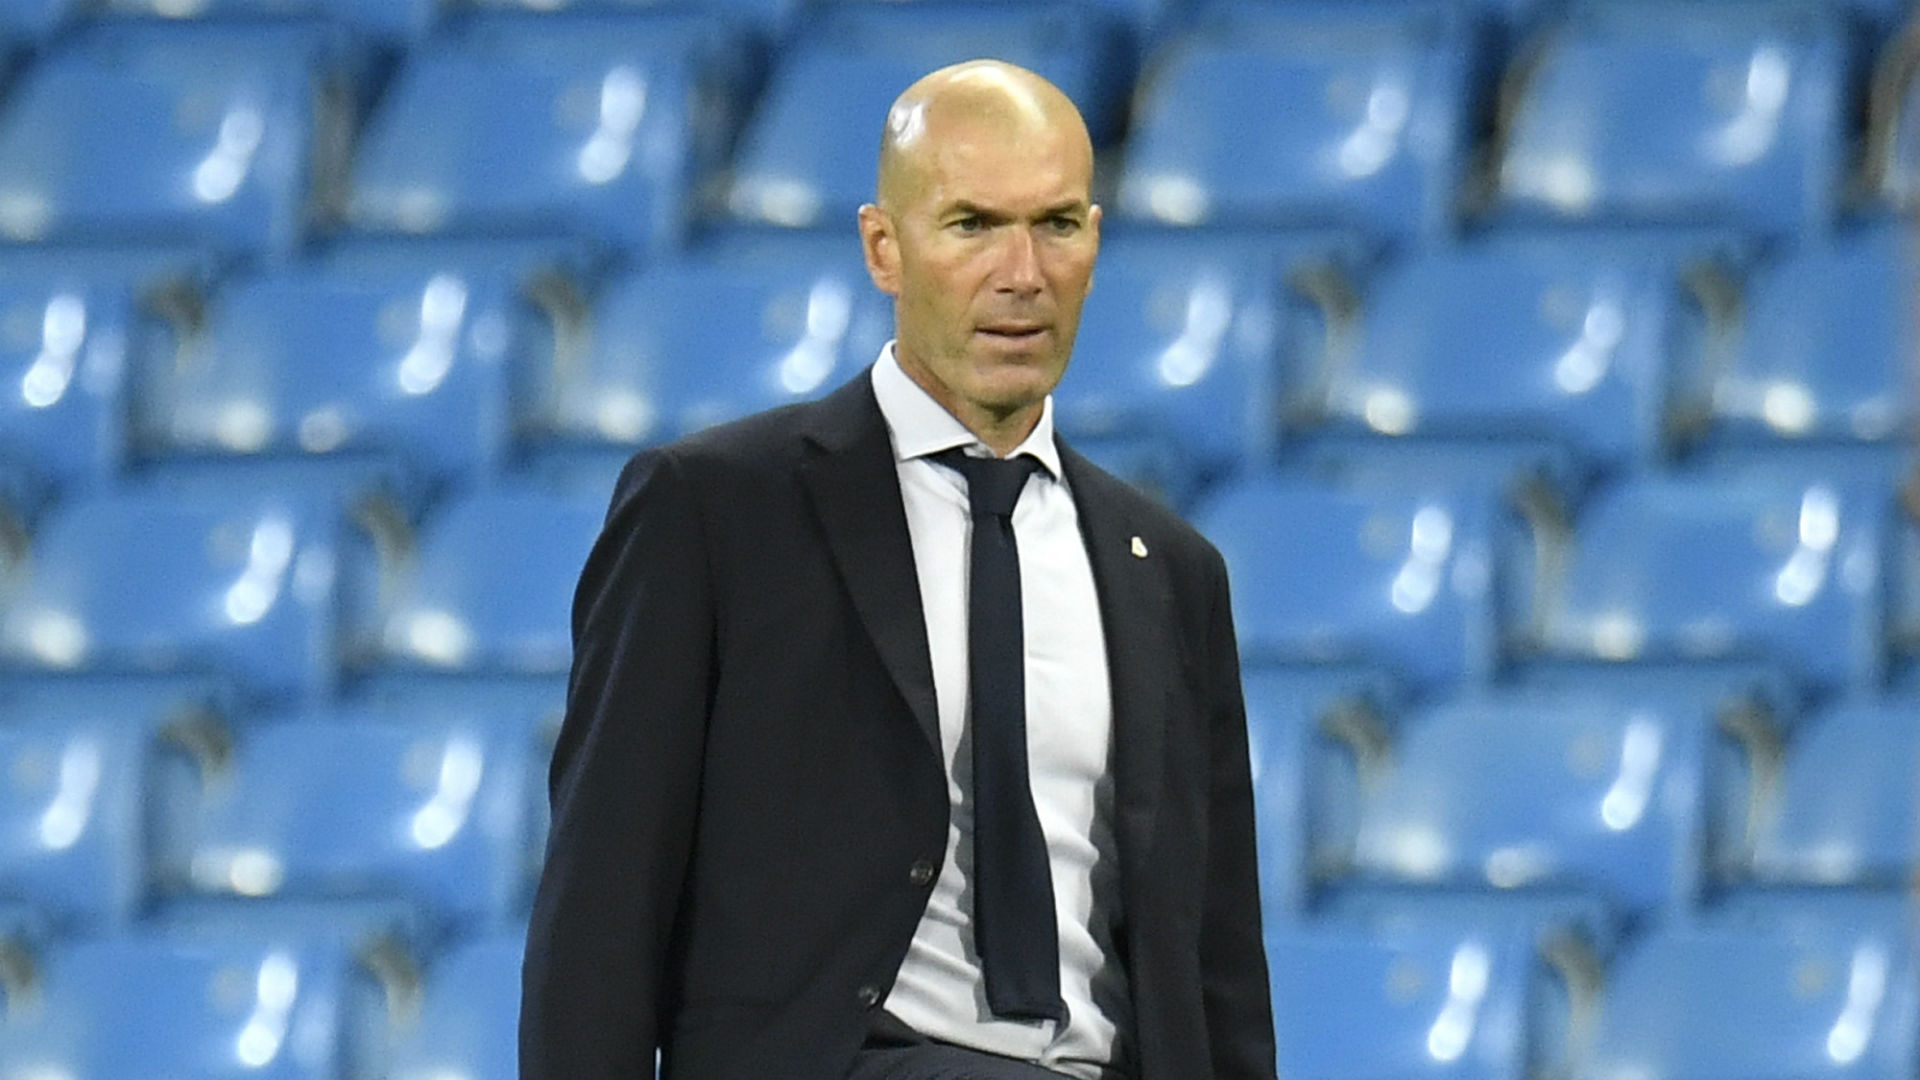 Zidane out to avoid record-equalling loss, Klopp eyes first Italian victory - Champions League in Opta numbers